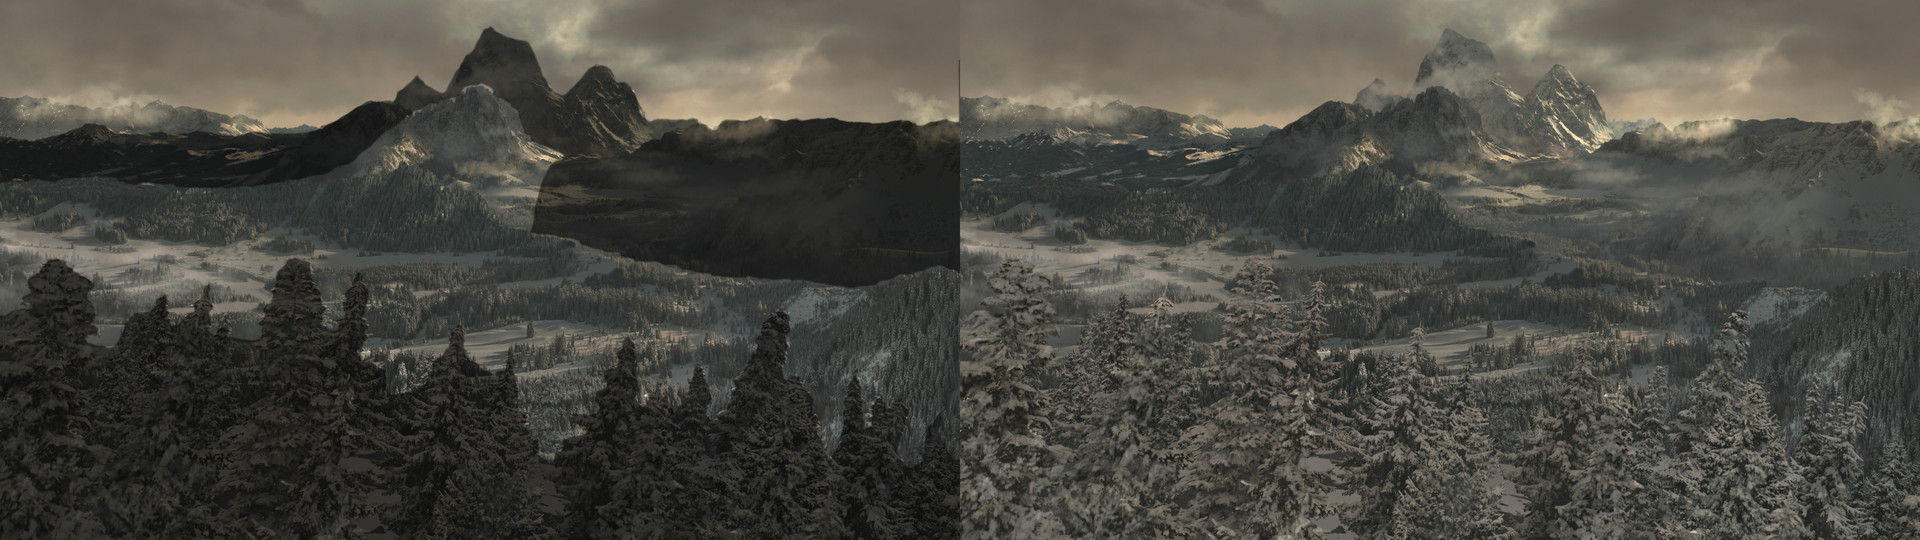 Marvel's Agents of Shield: Snowscape Photoshop and projections completed in Nuke on Areas indicated above